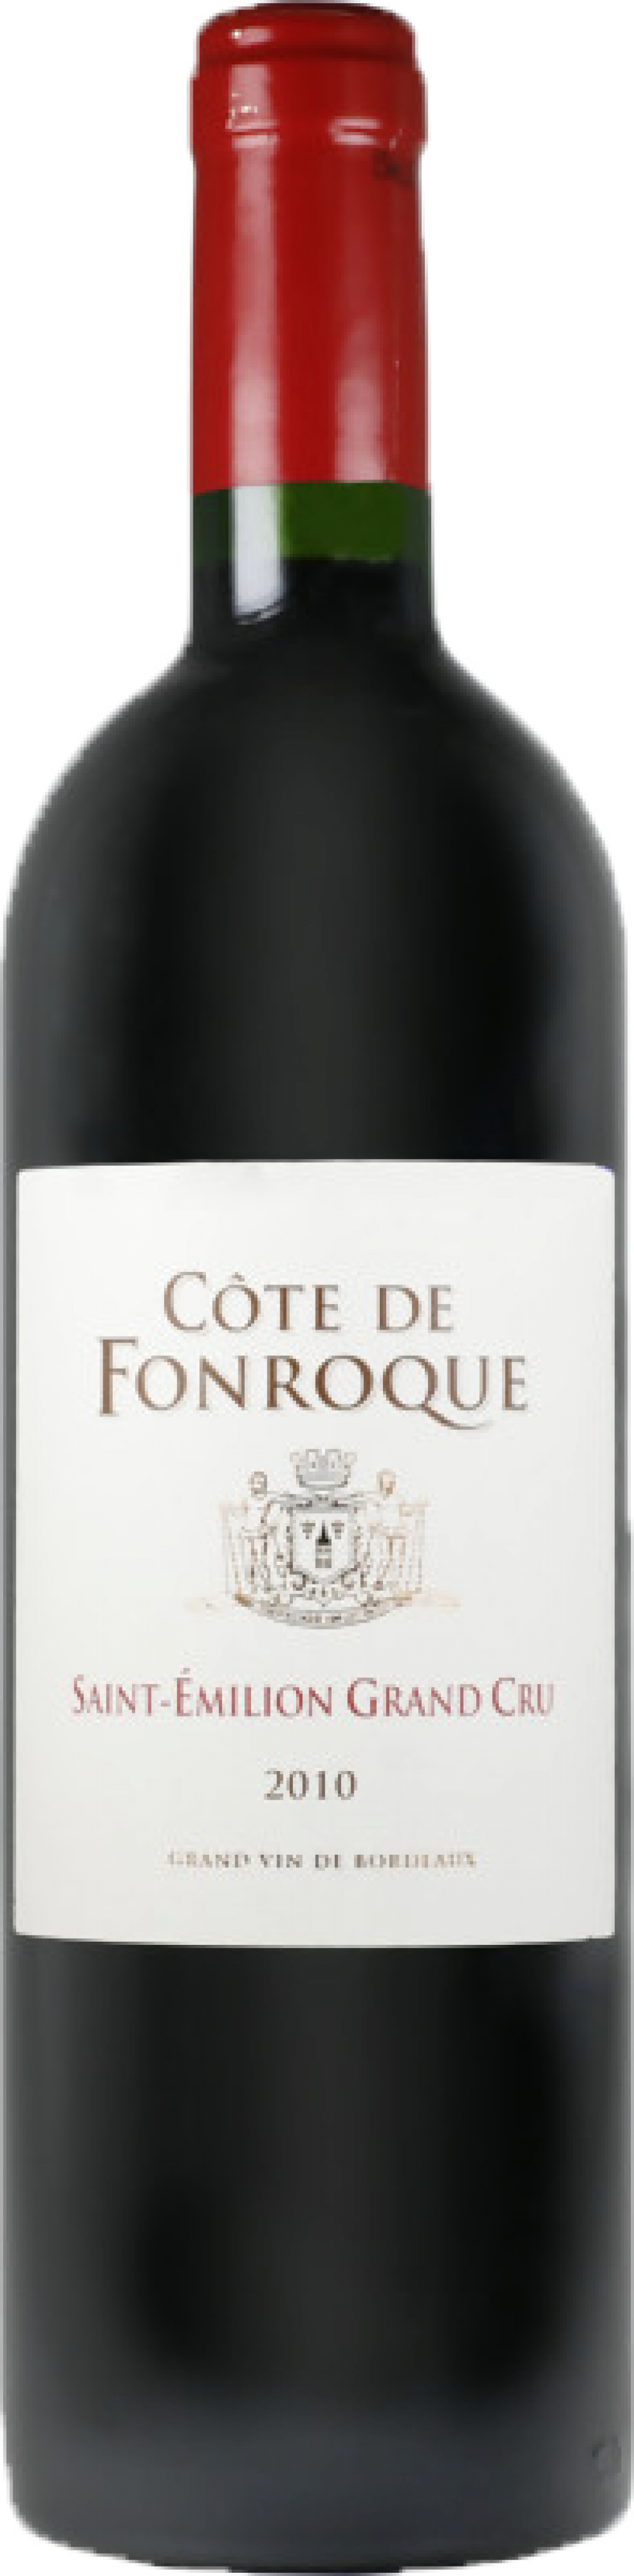 files/images/wines/France/chateau-fonroque/cote-fonroque-grand2010.png